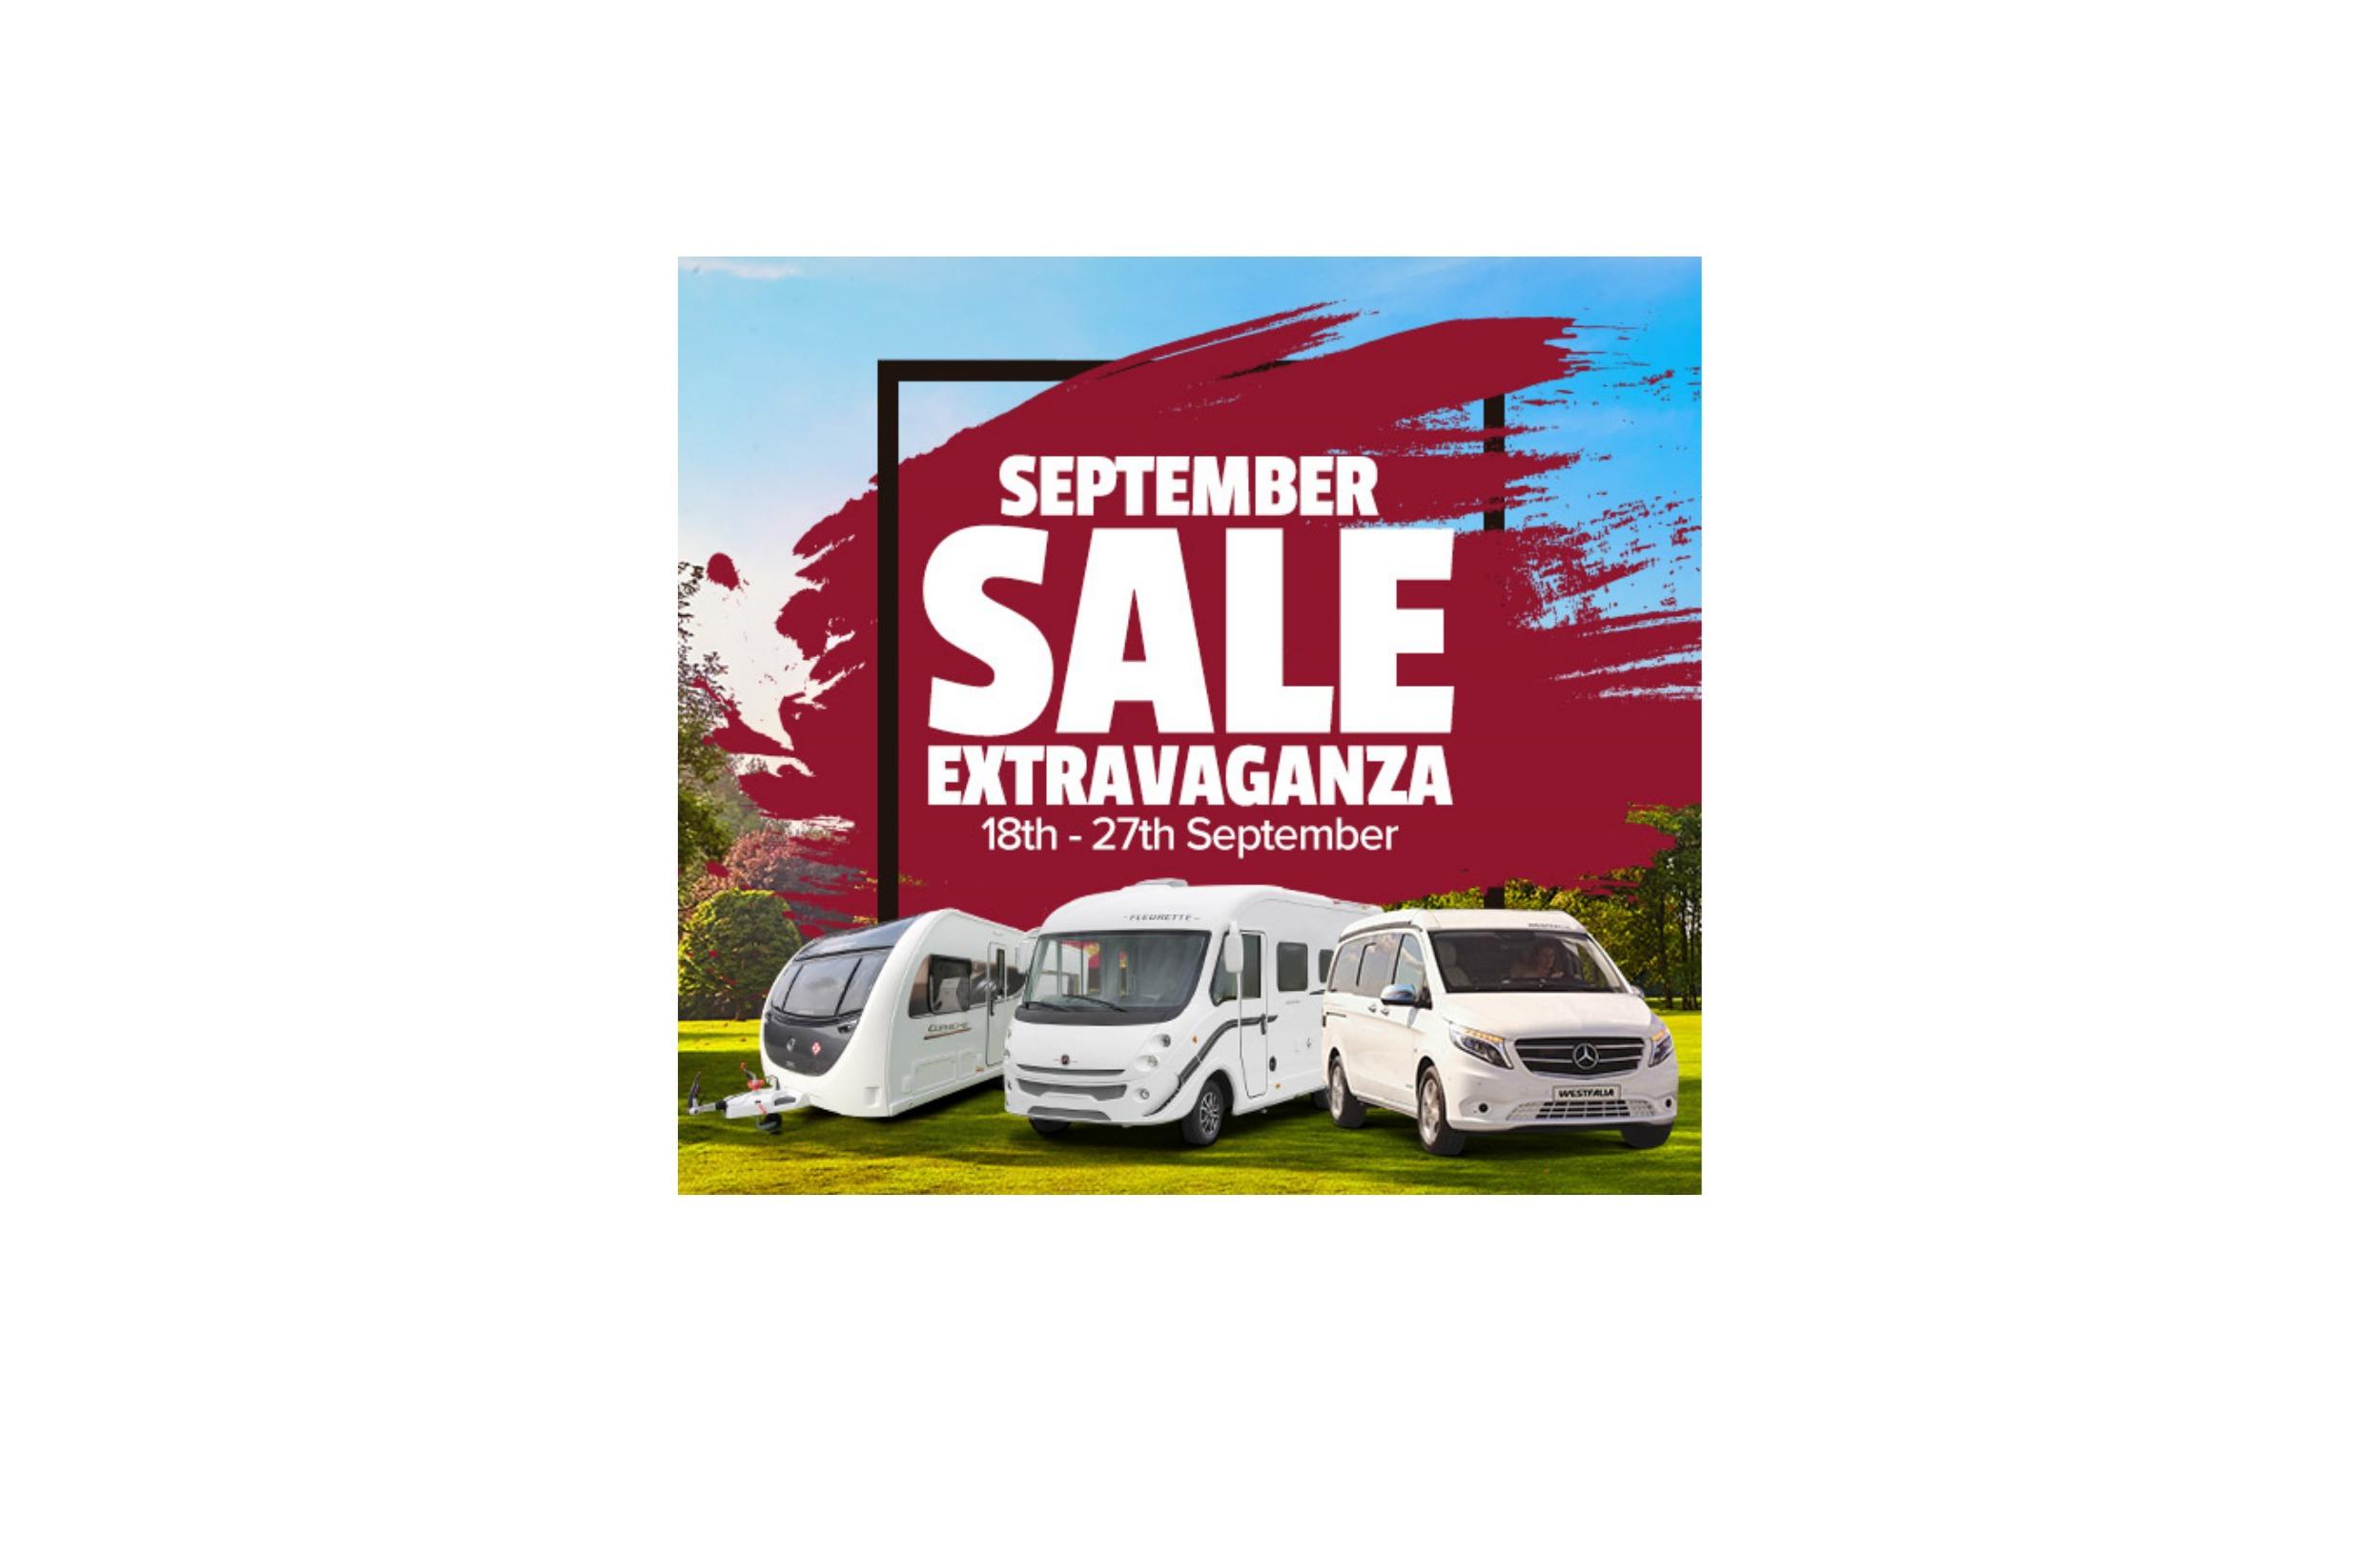 Join us for our September Sales Extravaganza